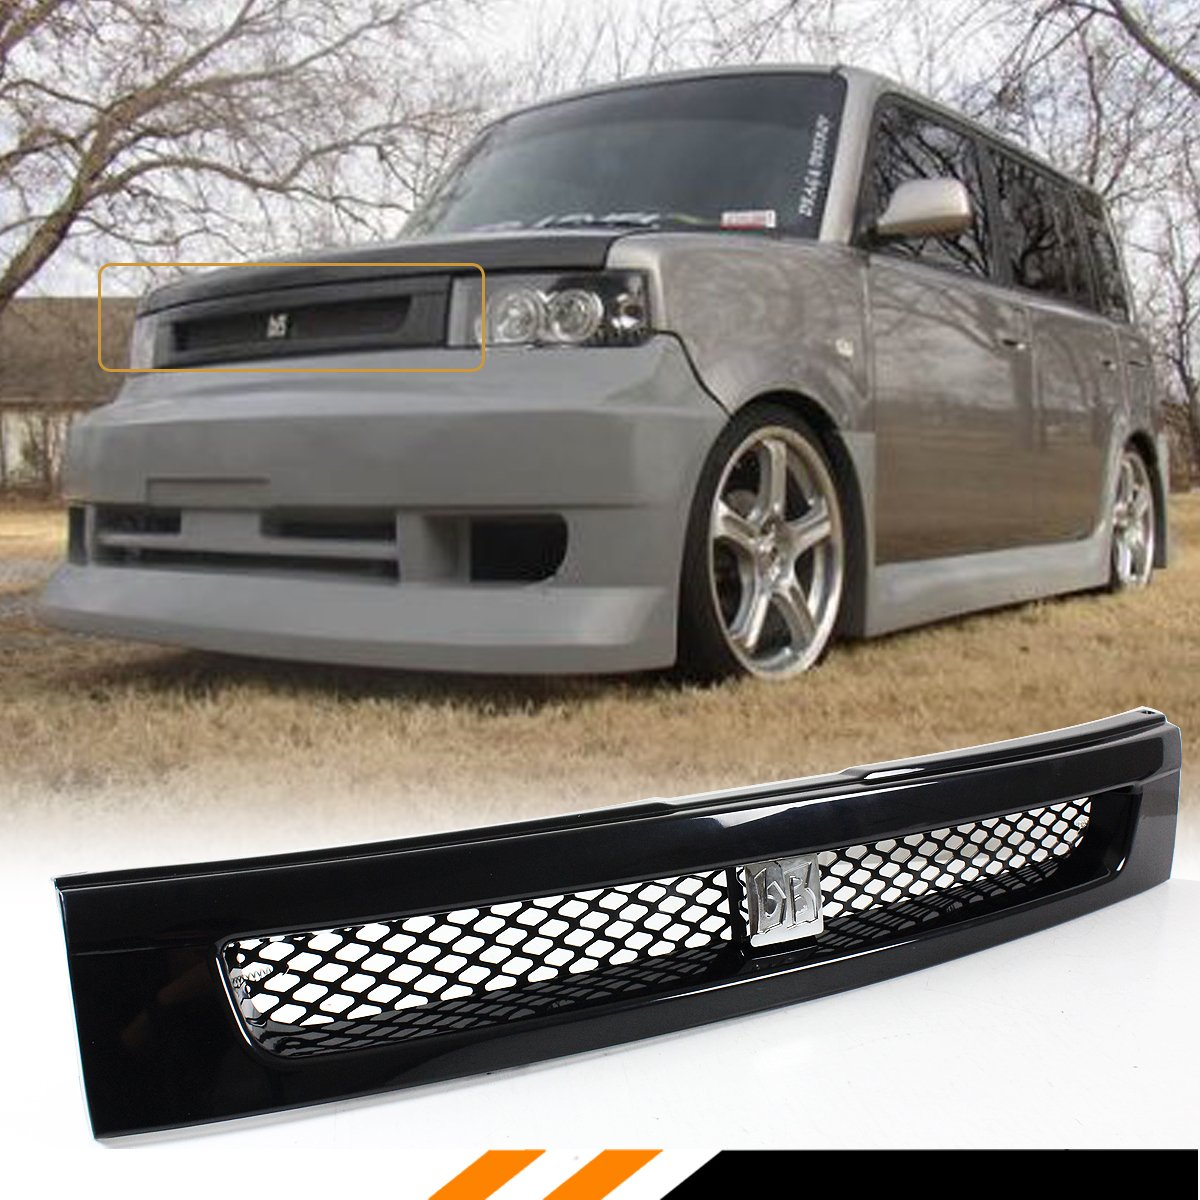 Amazon.com: FOR 2004-2007 SCION XB GLOSSY BLACK JDM FRONT HOOD MESH GRILL + CHROME BB LOGO EMBLEM BADGE: Automotive